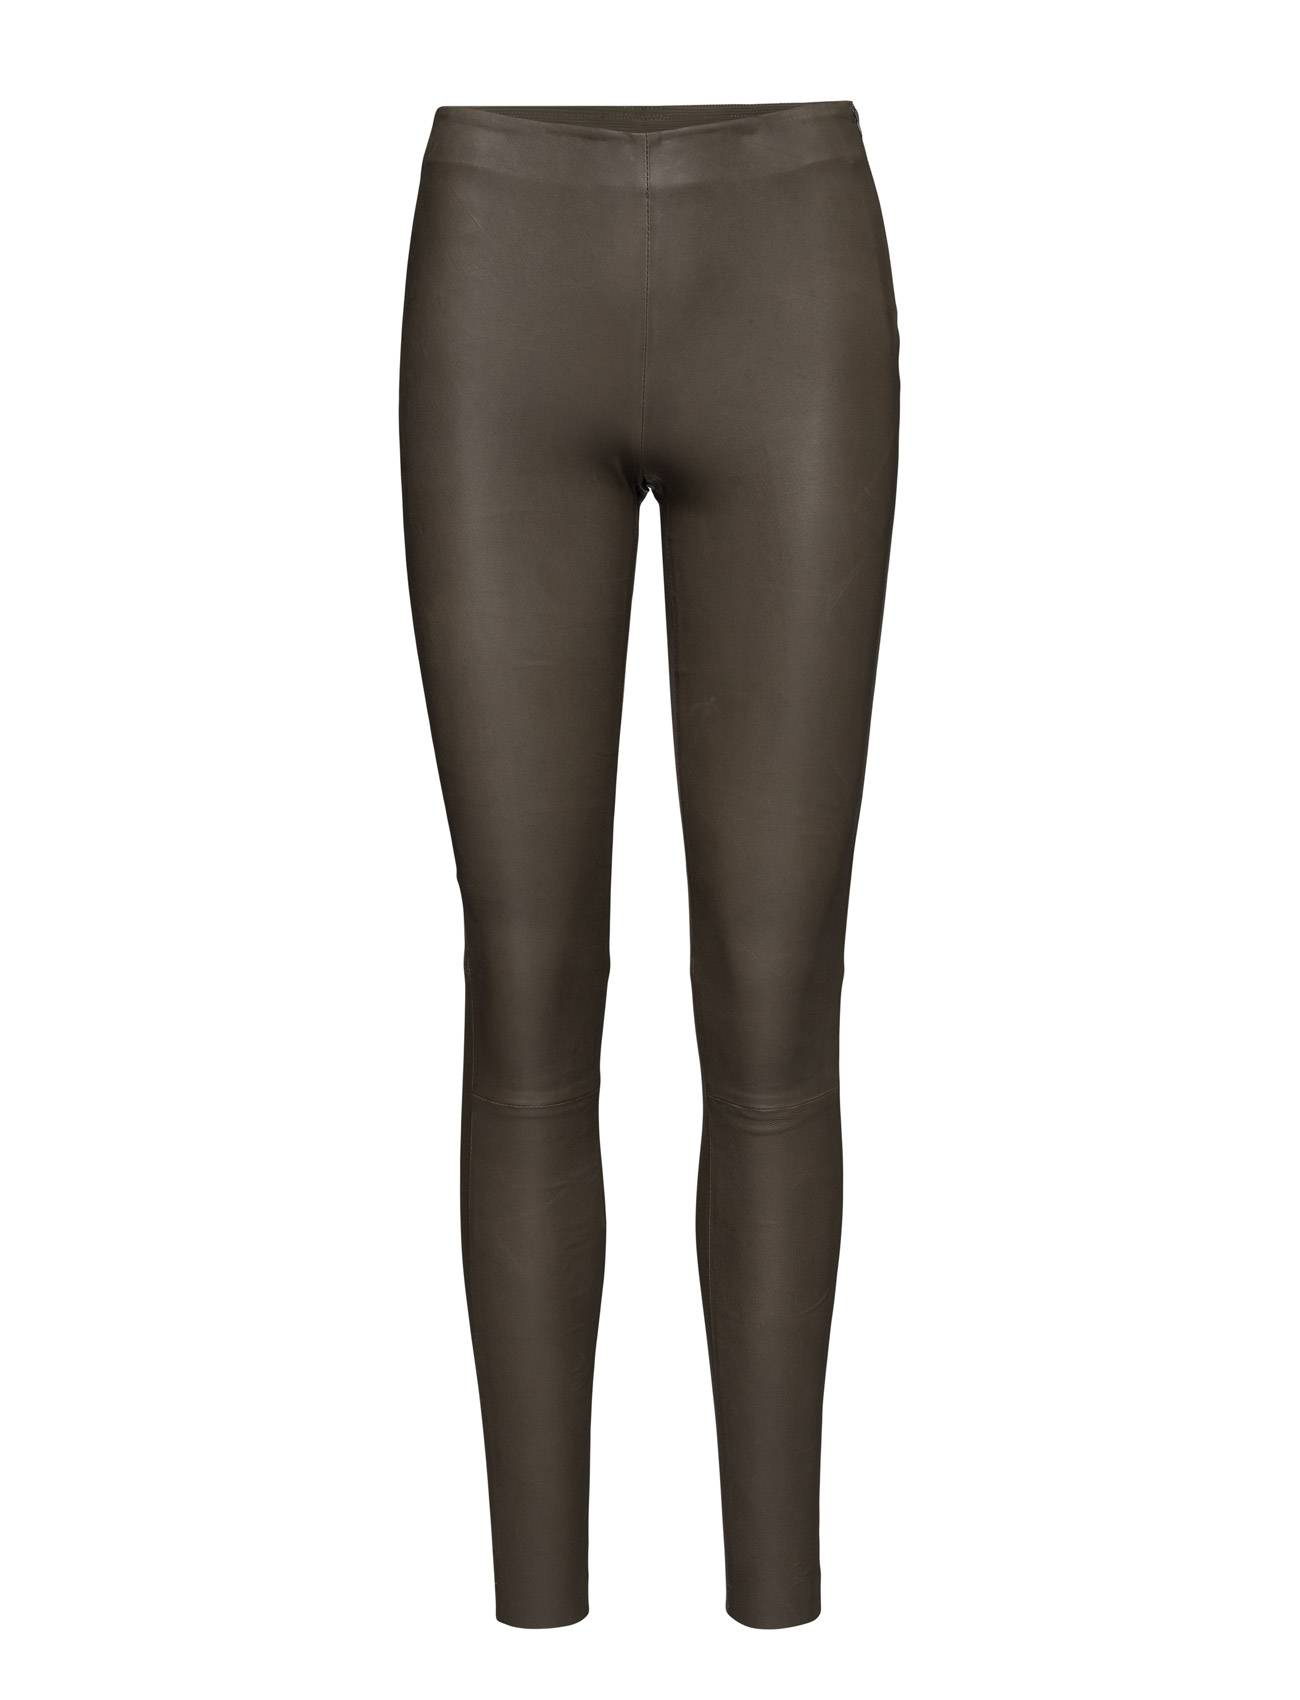 Selected Femme Slfsylvia Mw Stretch Leather Leggin B Leather Leggings/Housut Ruskea Selected Femme